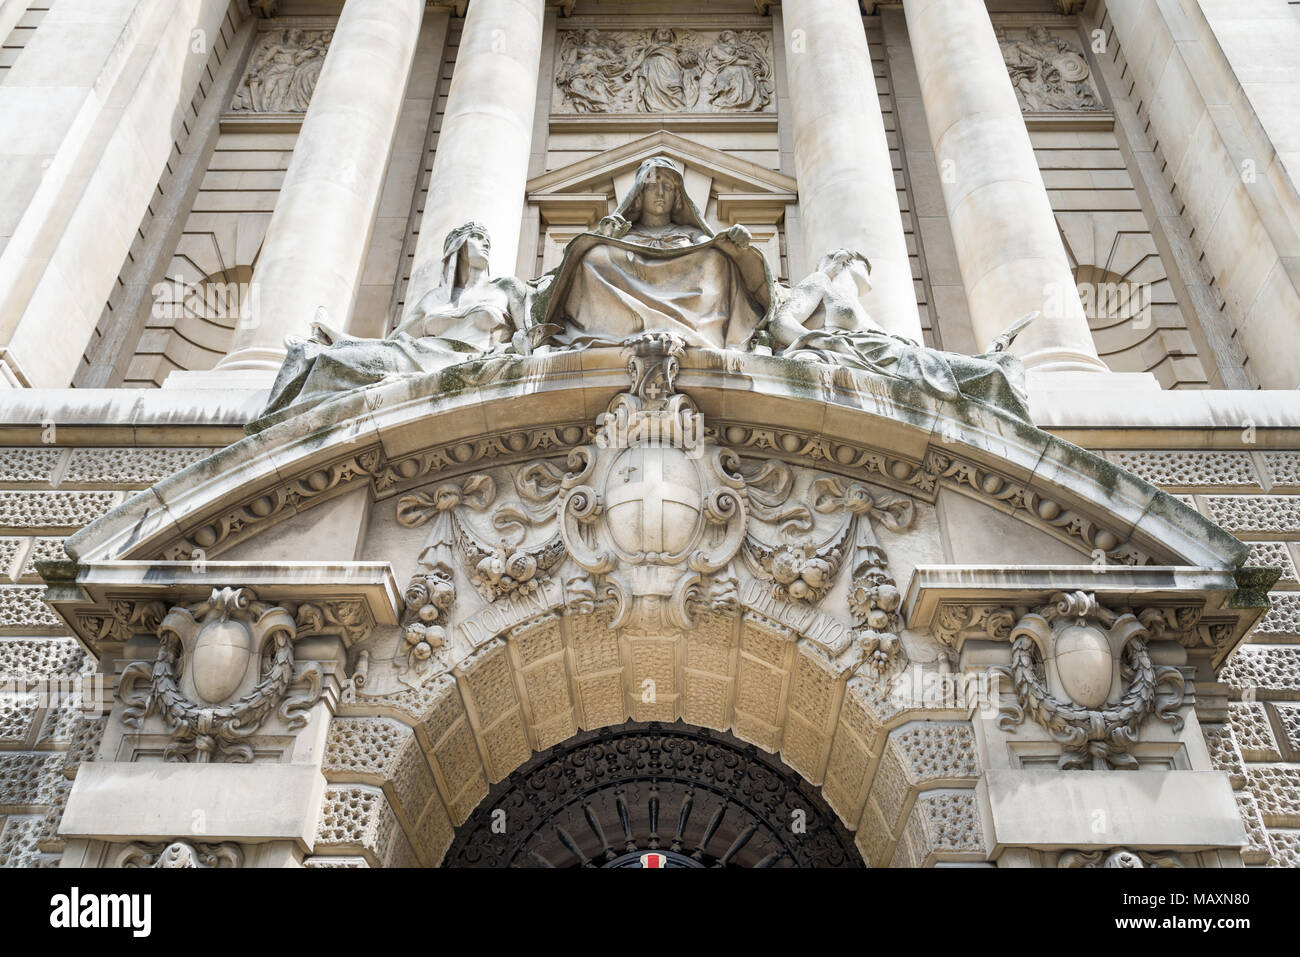 Fortitude and Truth flanking a recording angel by Frederick William Pomeroy, the Old Bailey, London, UK Stock Photo